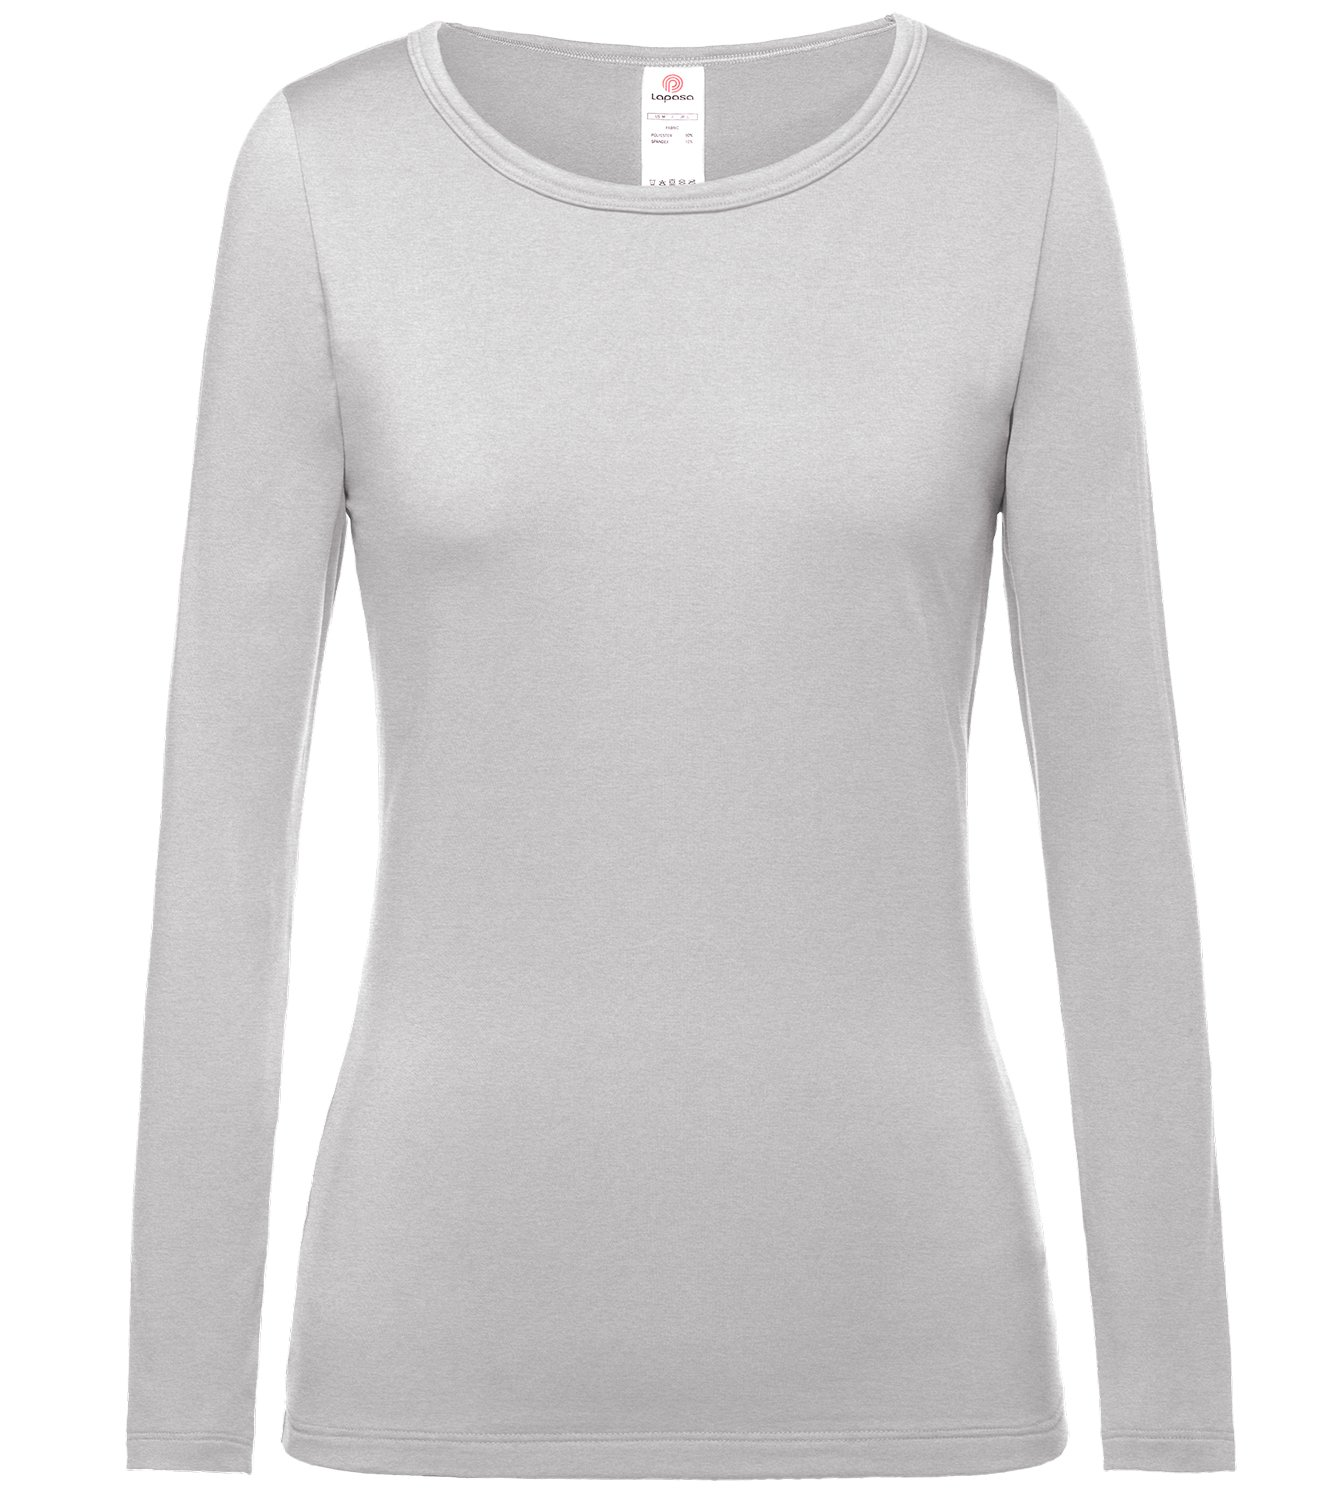 LAPASA Women's Lightweight Thermal Underwear Top Fleece Lined Base Layer Long Sleeve Shirt L15 (Grey, Medium) by LAPASA (Image #2)